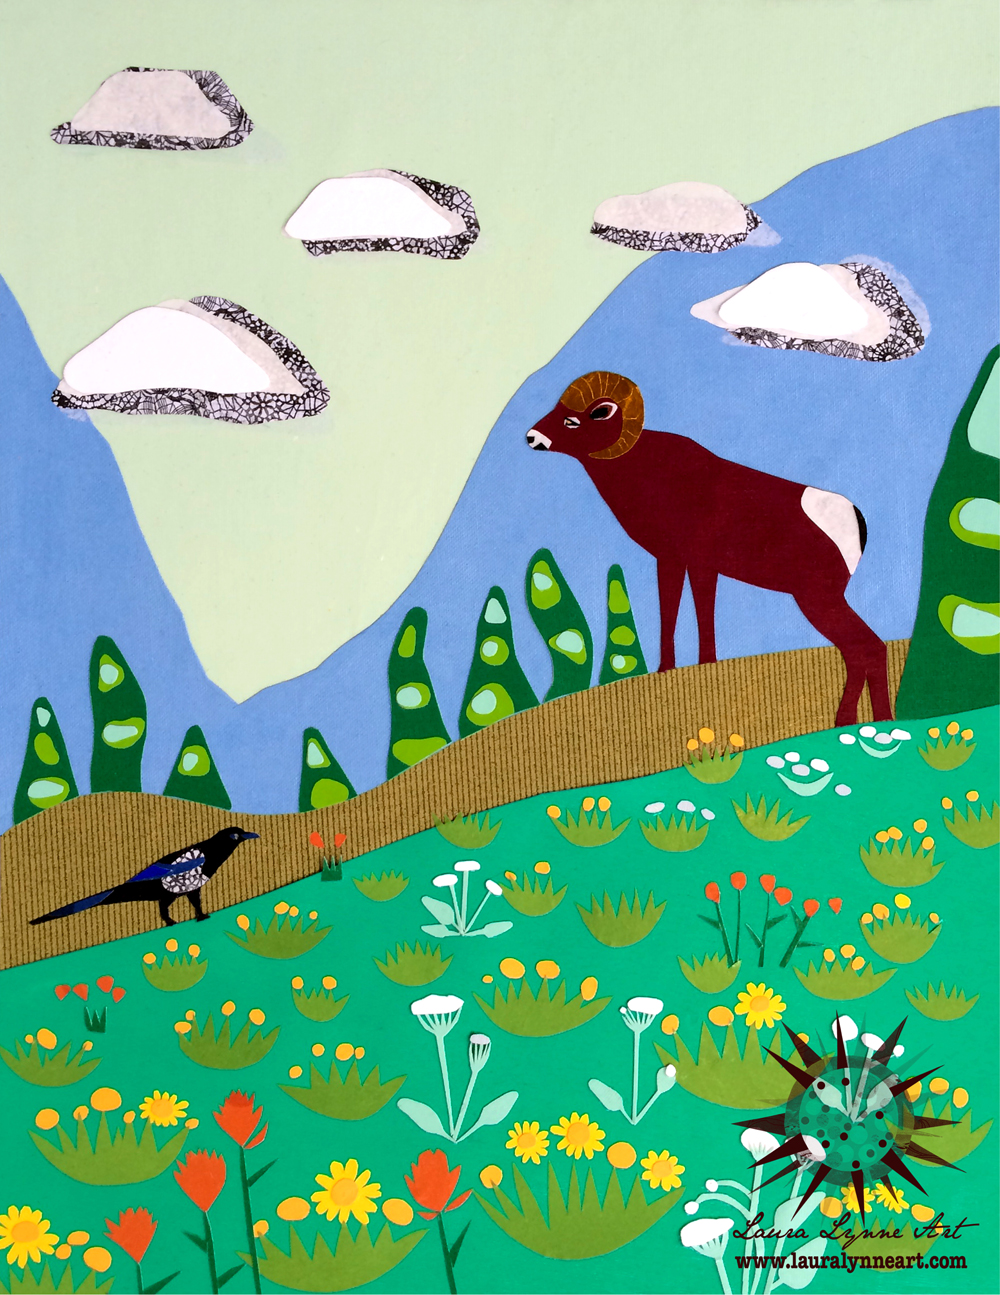 Colorful woodland ram with magpie wall art print by Laura Lynne